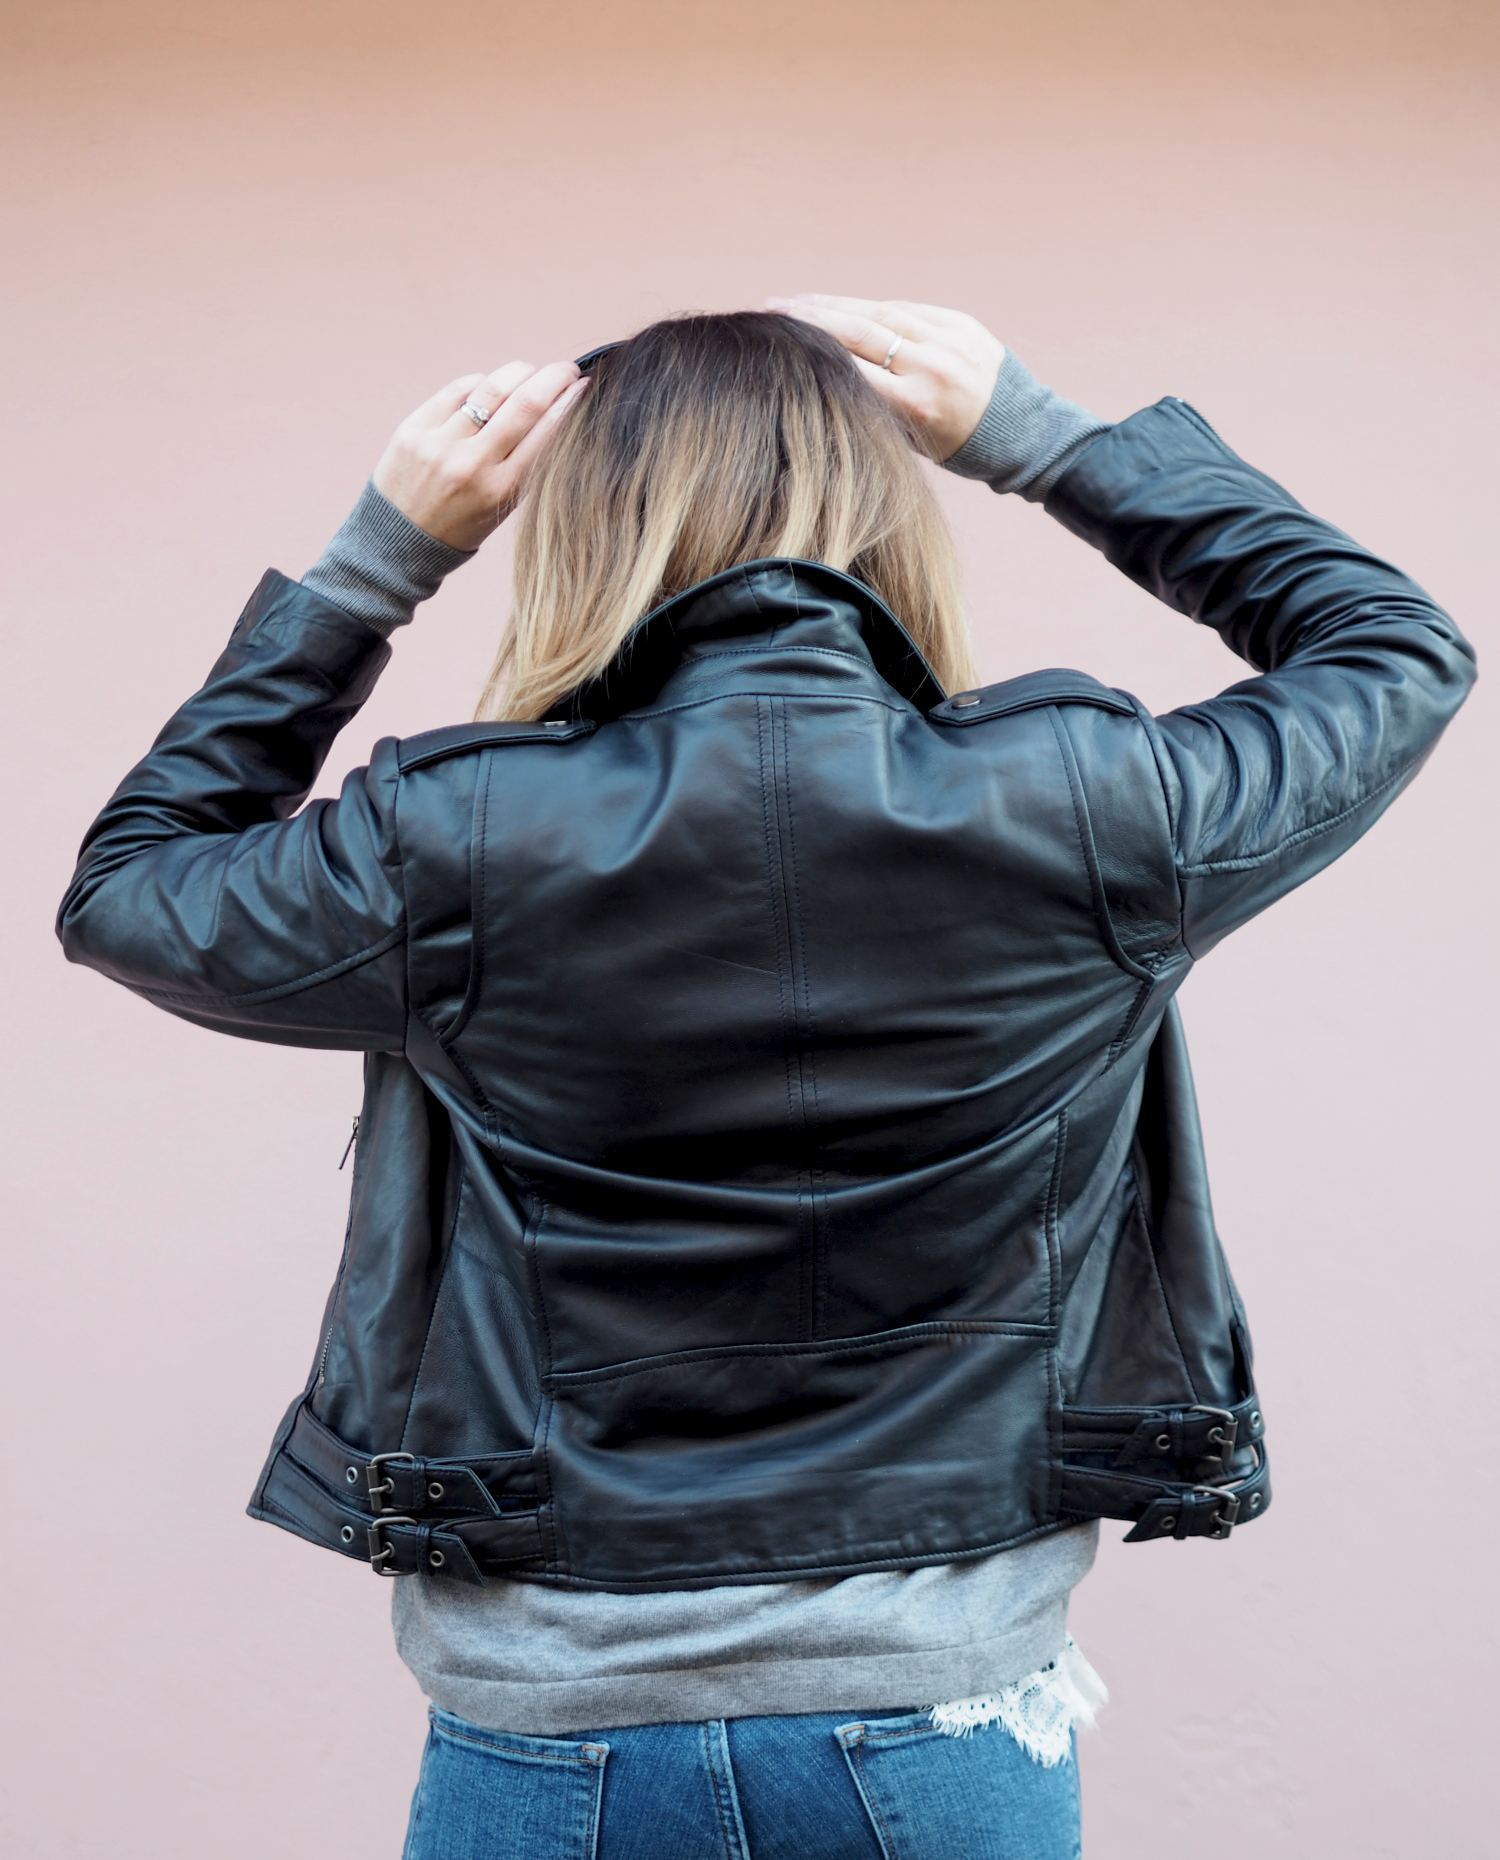 5 reasons to invest in real leather jacket outfit casual with jeans